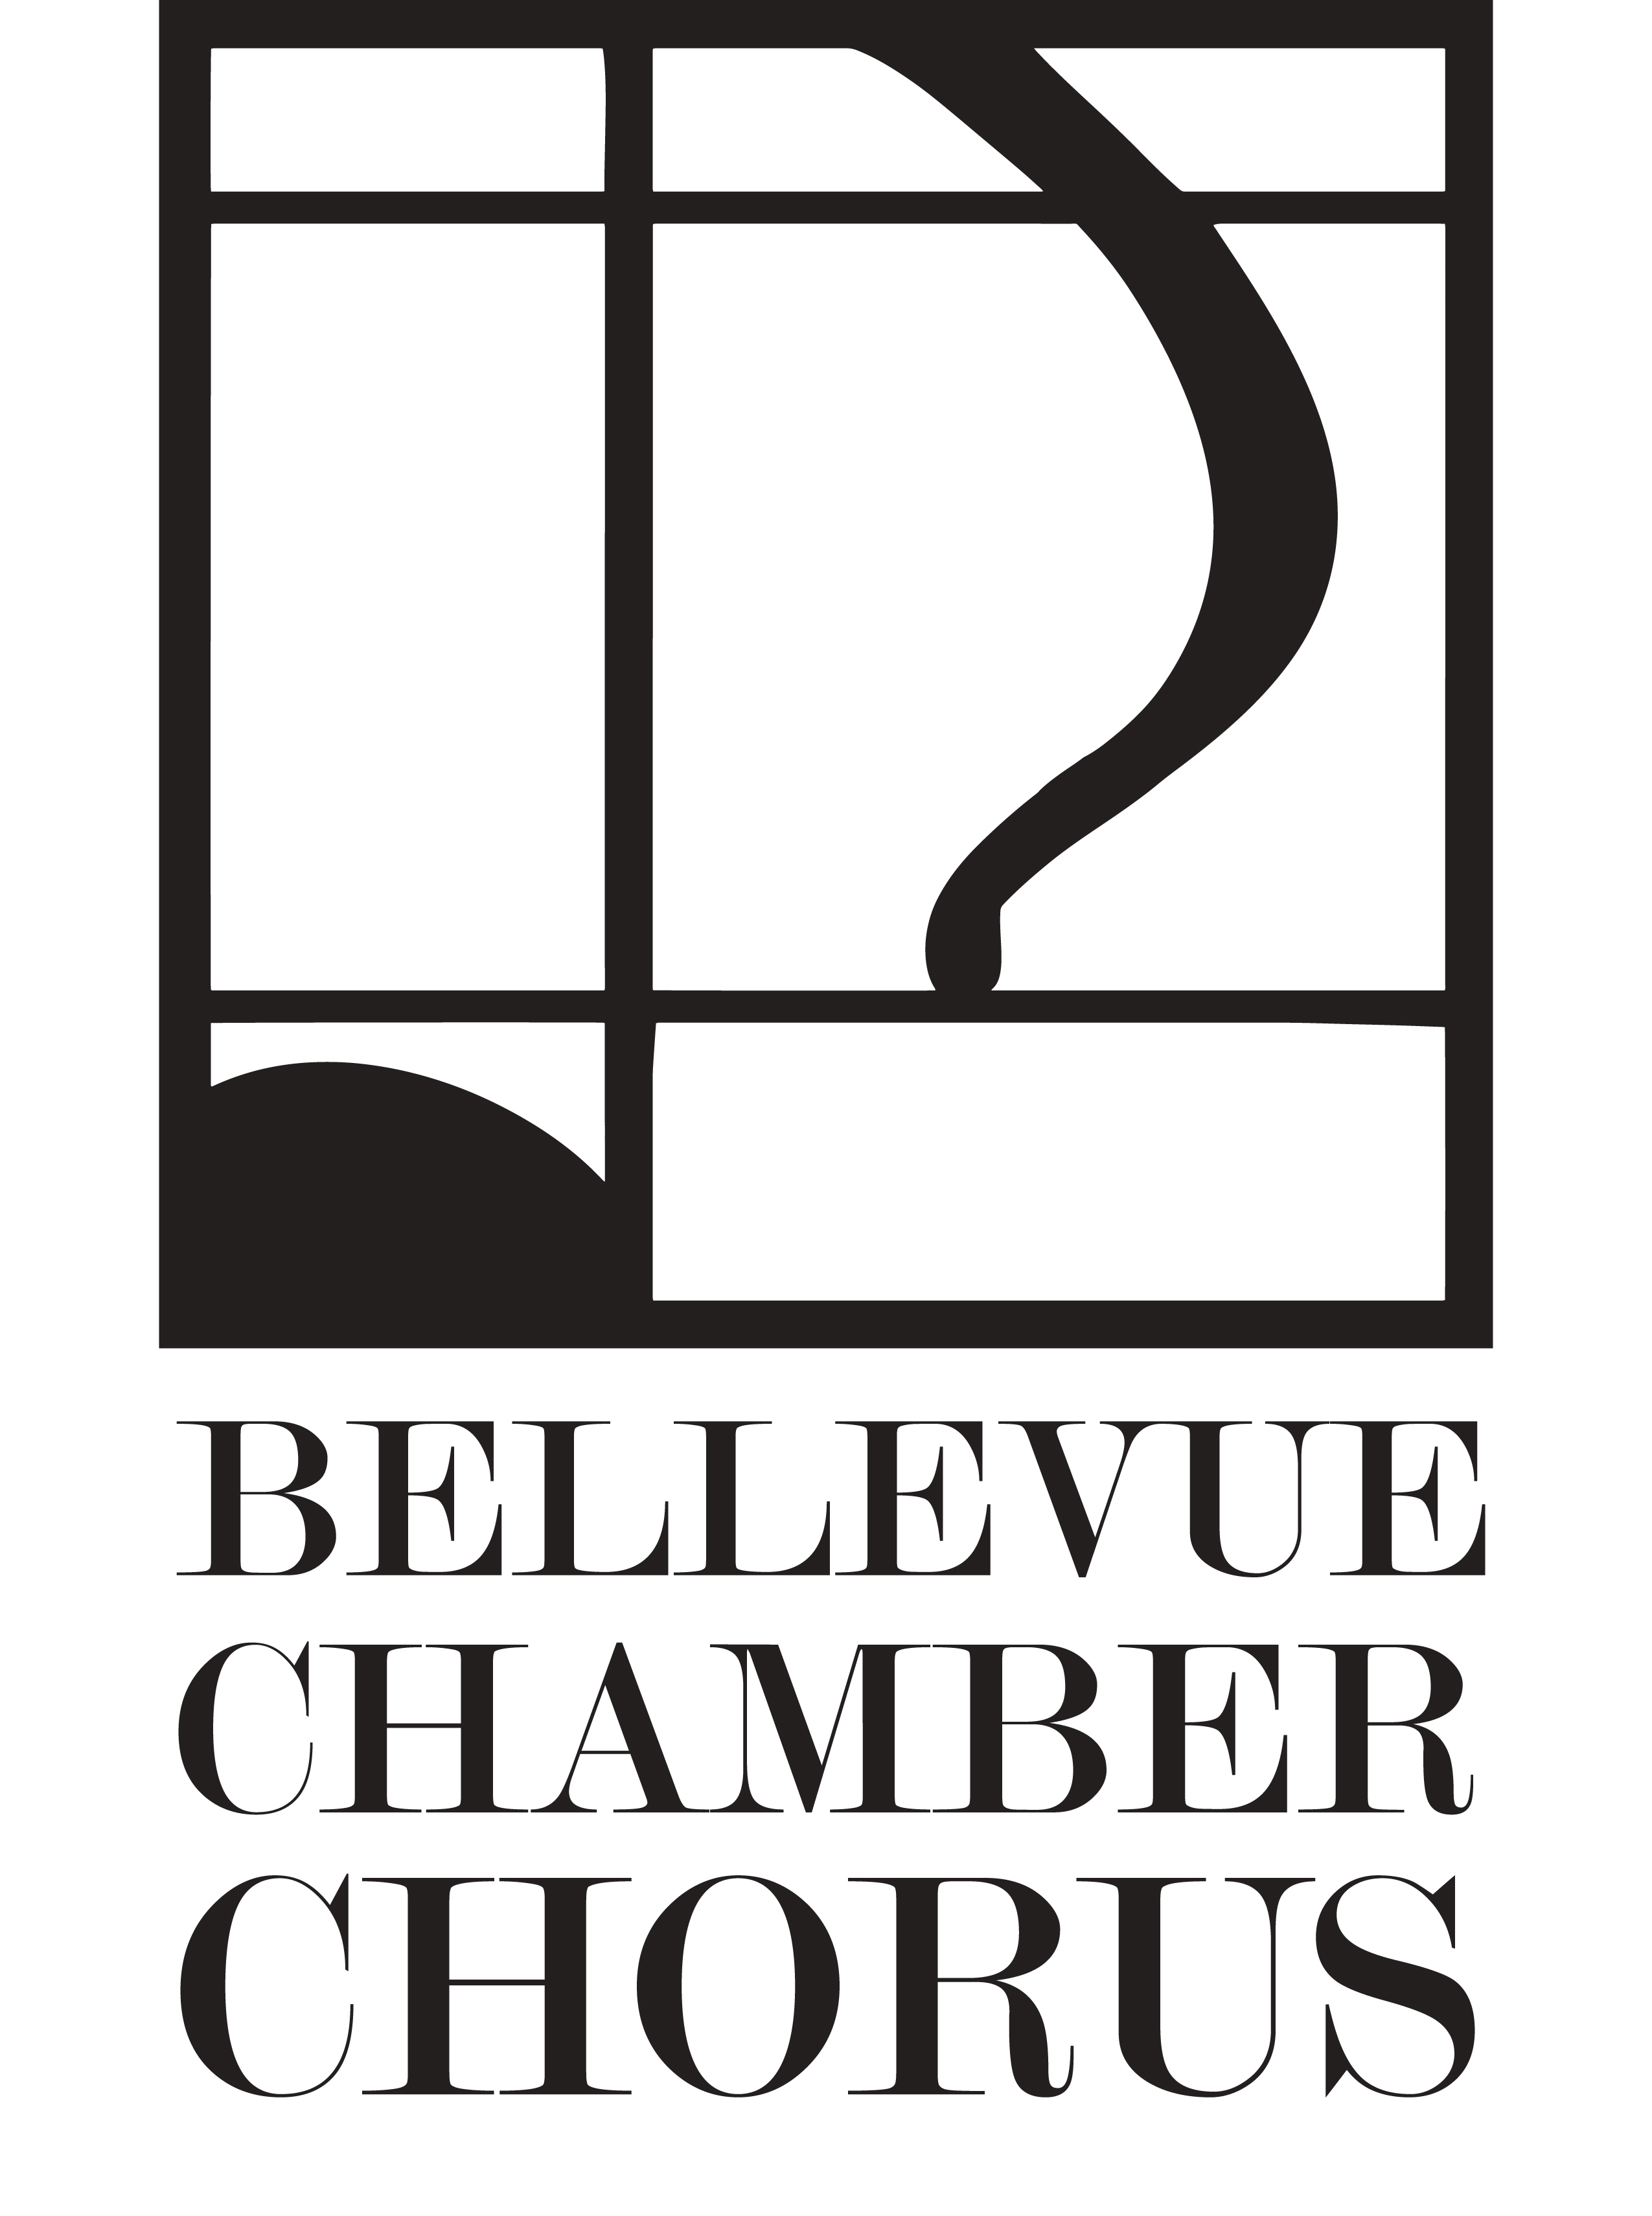 Audition for Bellevue Chamber Chorus!. Chris Meierding, Meierding Designs